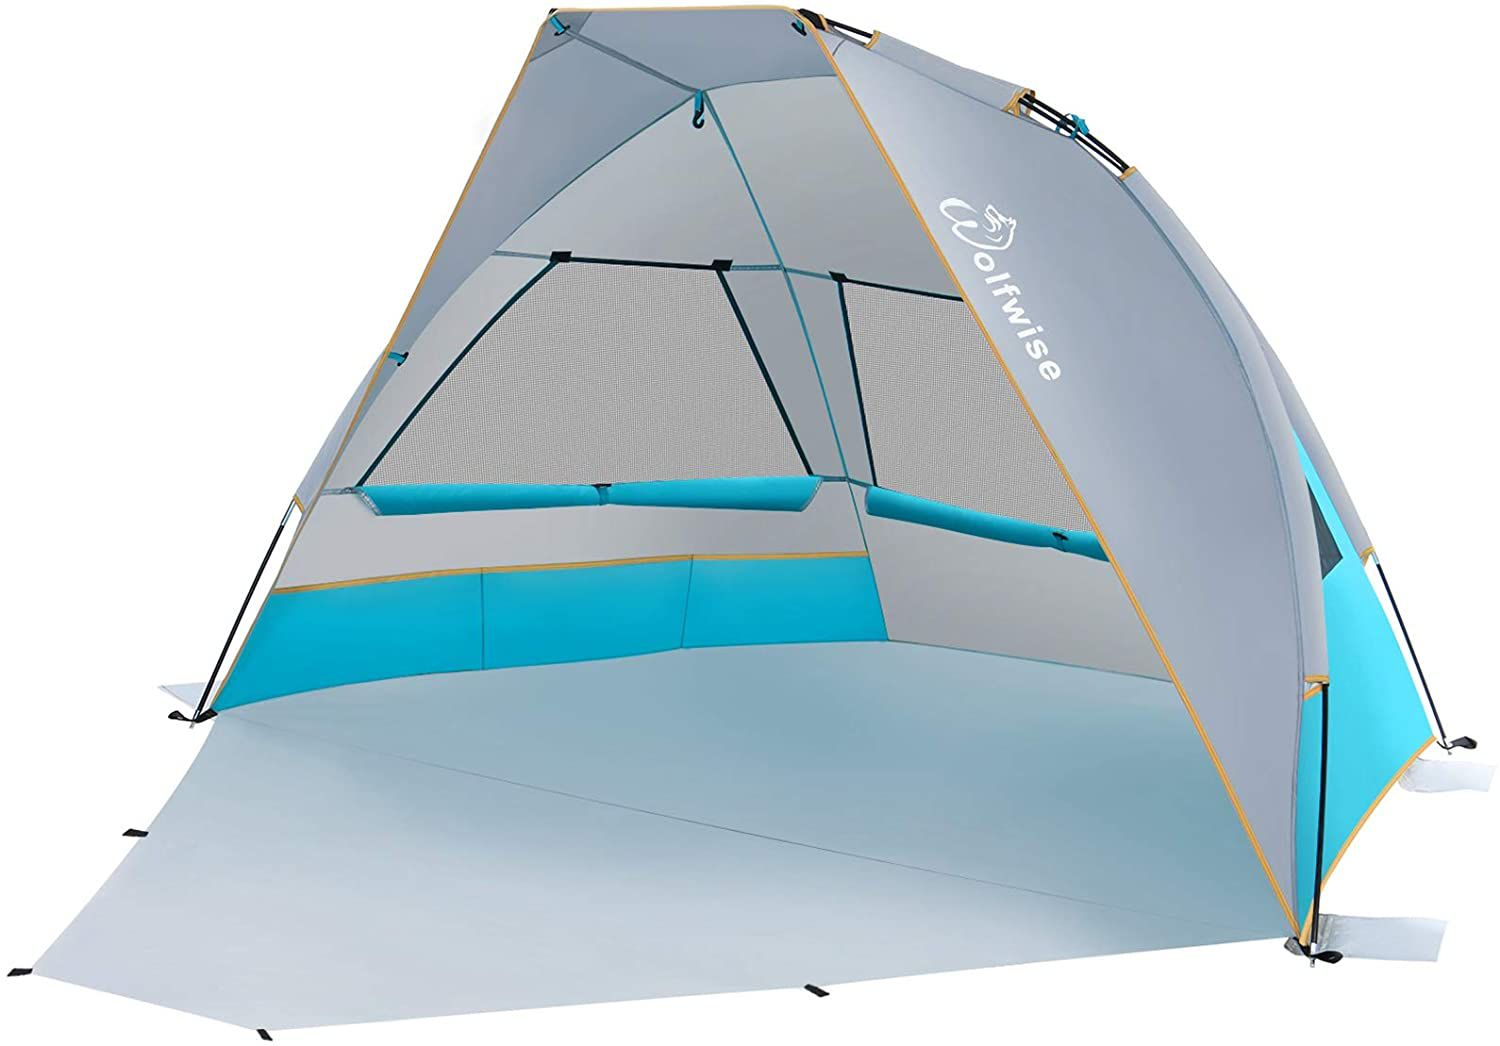 WolfWise Portable Beach Tent